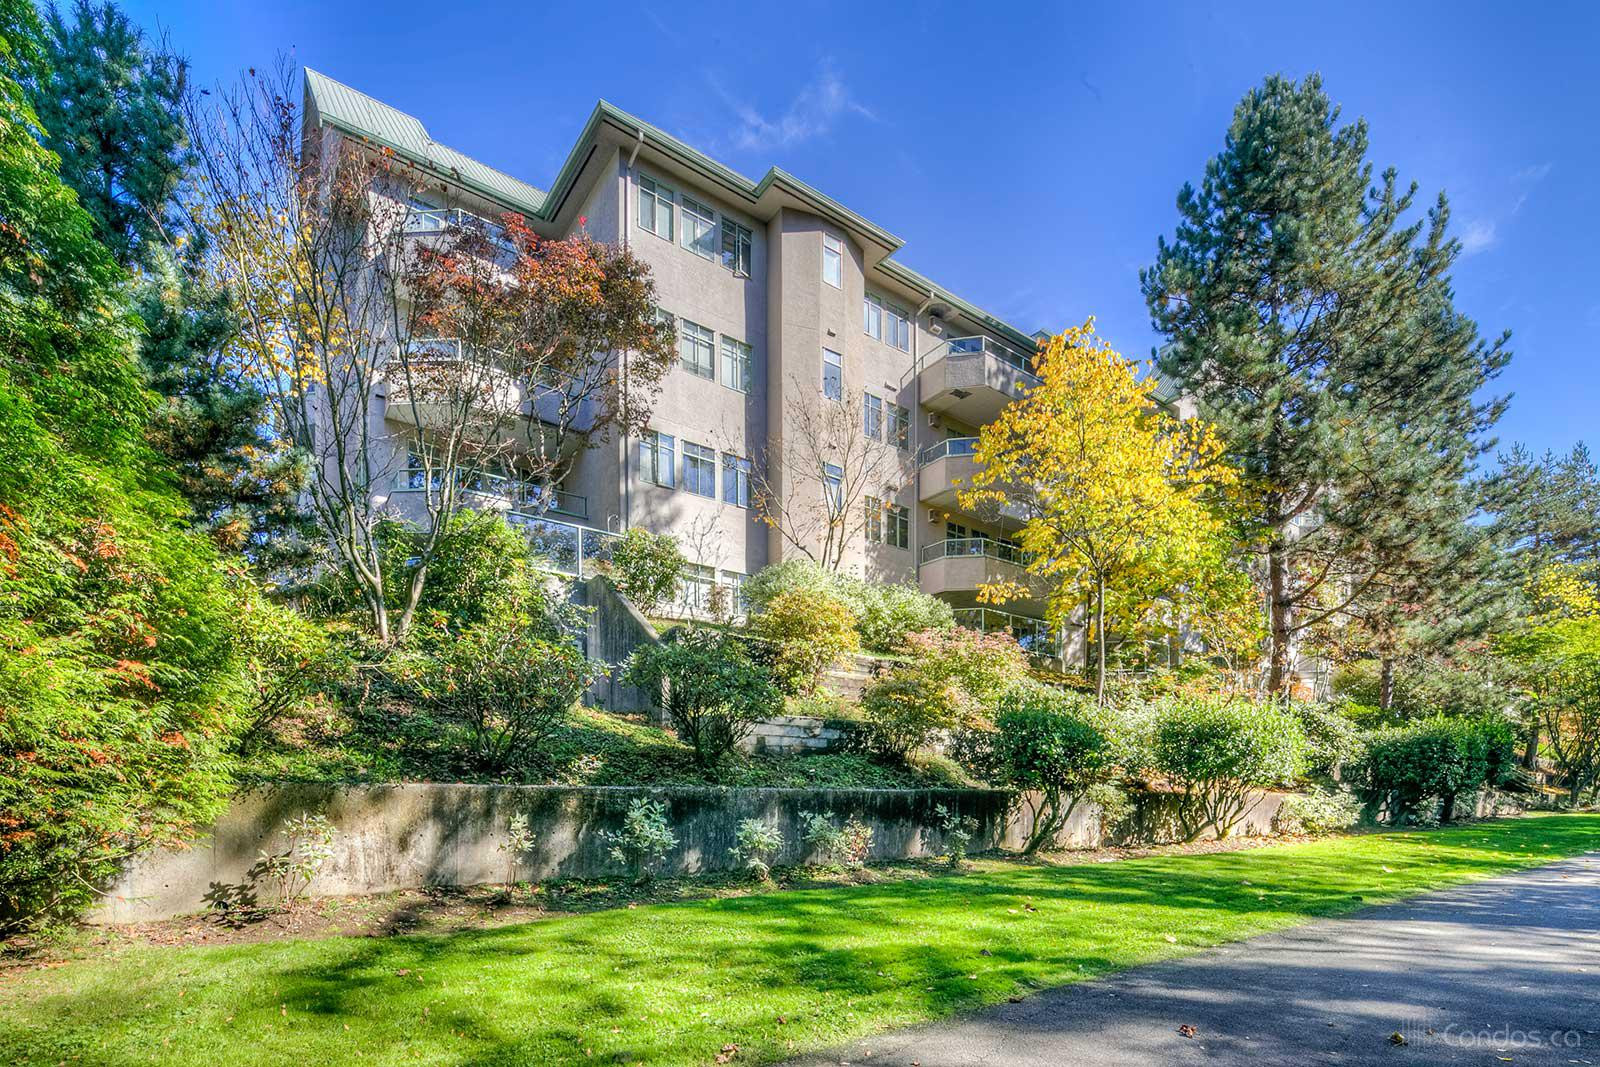 The Courtyards at 6735 Station Hill Crt, Burnaby 1